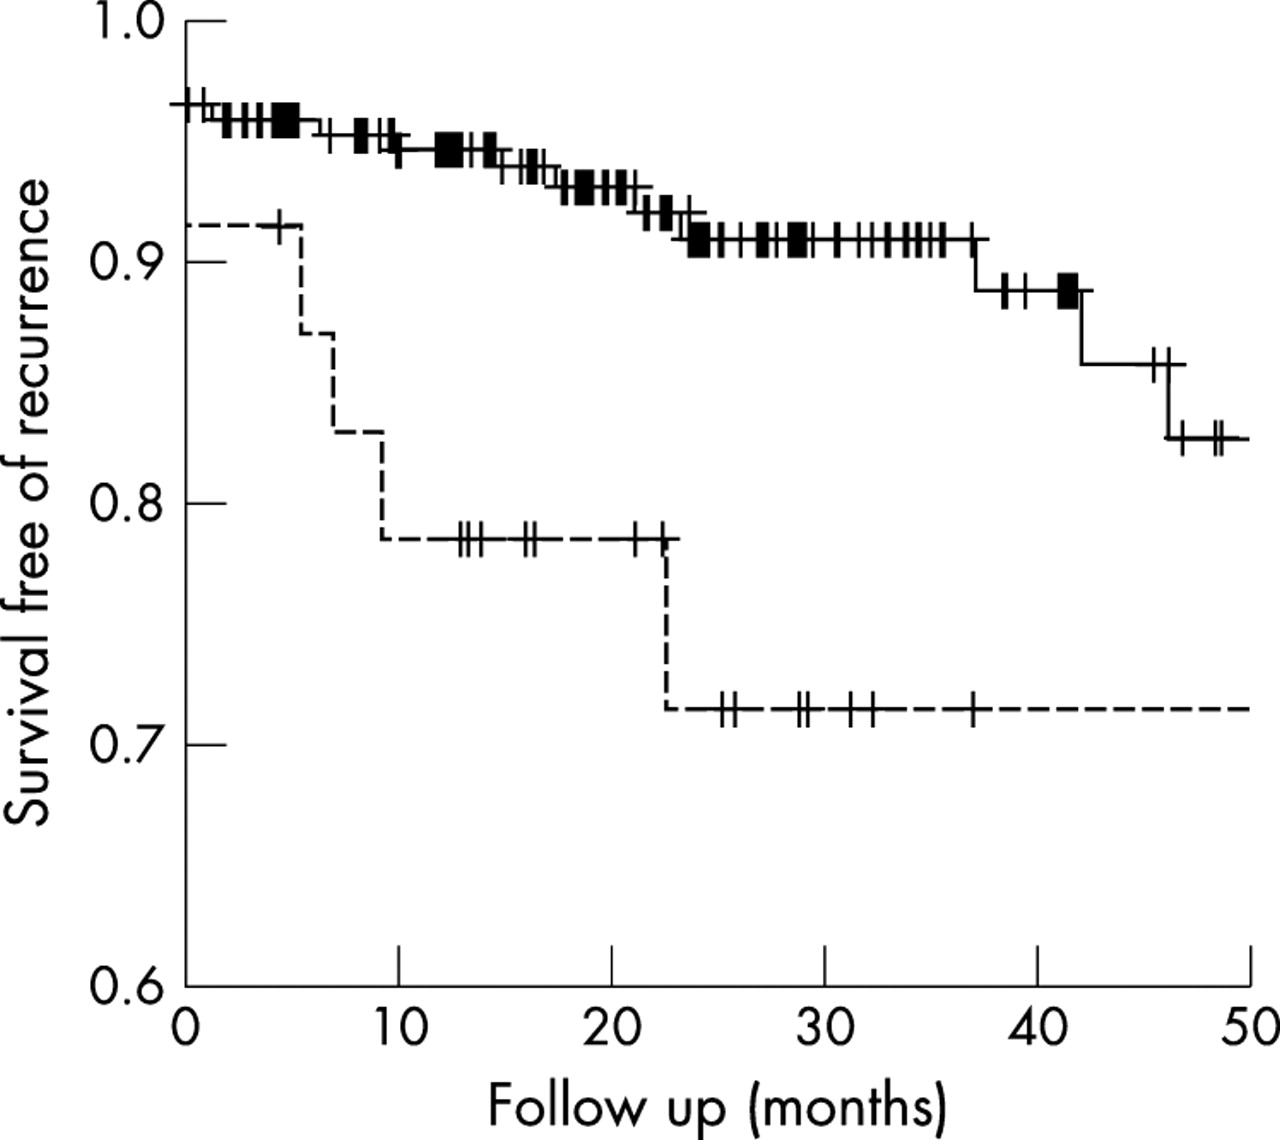 Ischaemic stroke in young adults: predictors of outcome and